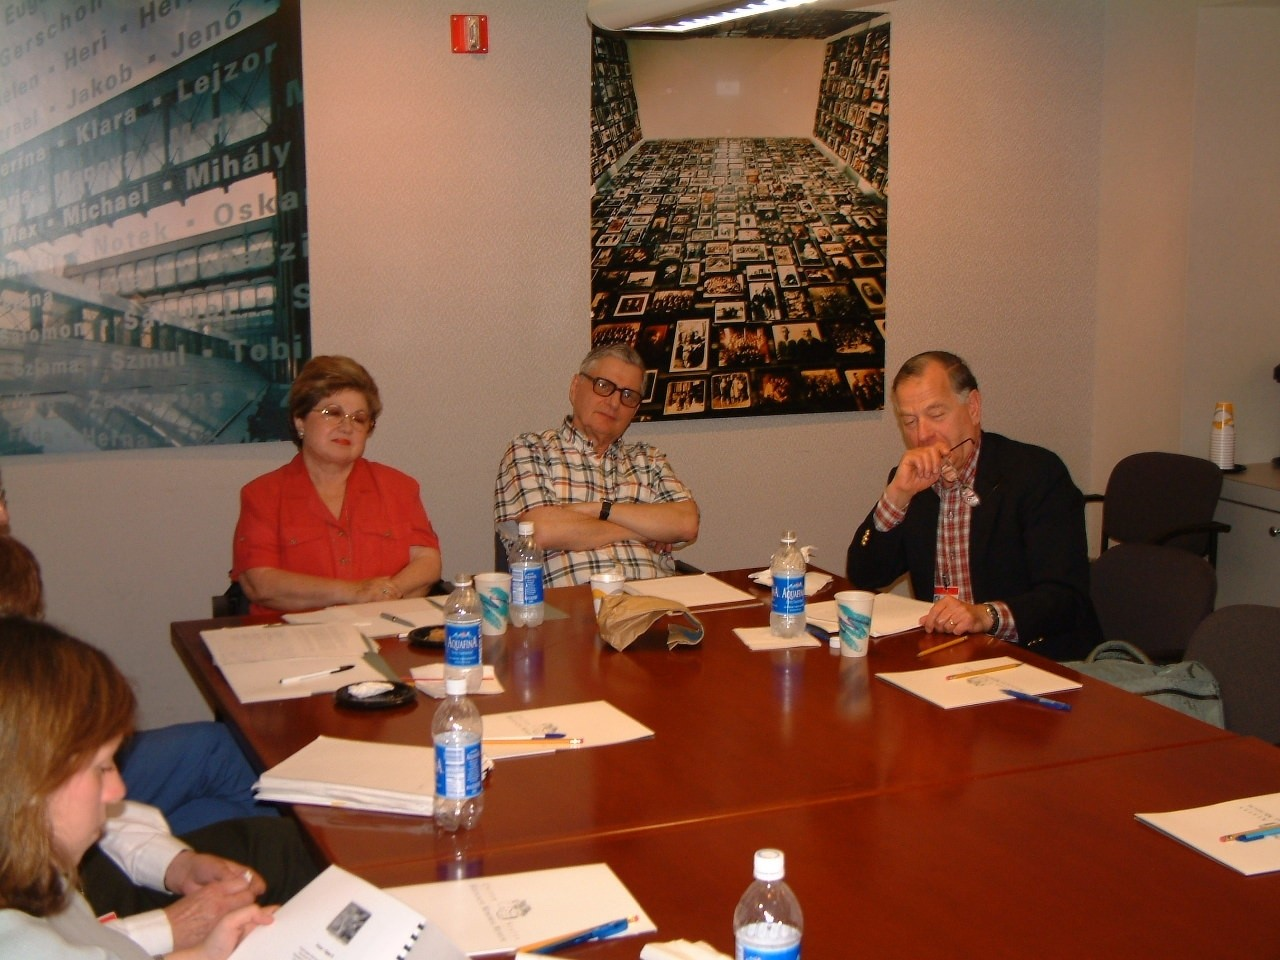 Survivor volunteers attend a session of The Memory Project: the Survivors' Writing Workshop at the U.S. Holocaust Memorial Museum.